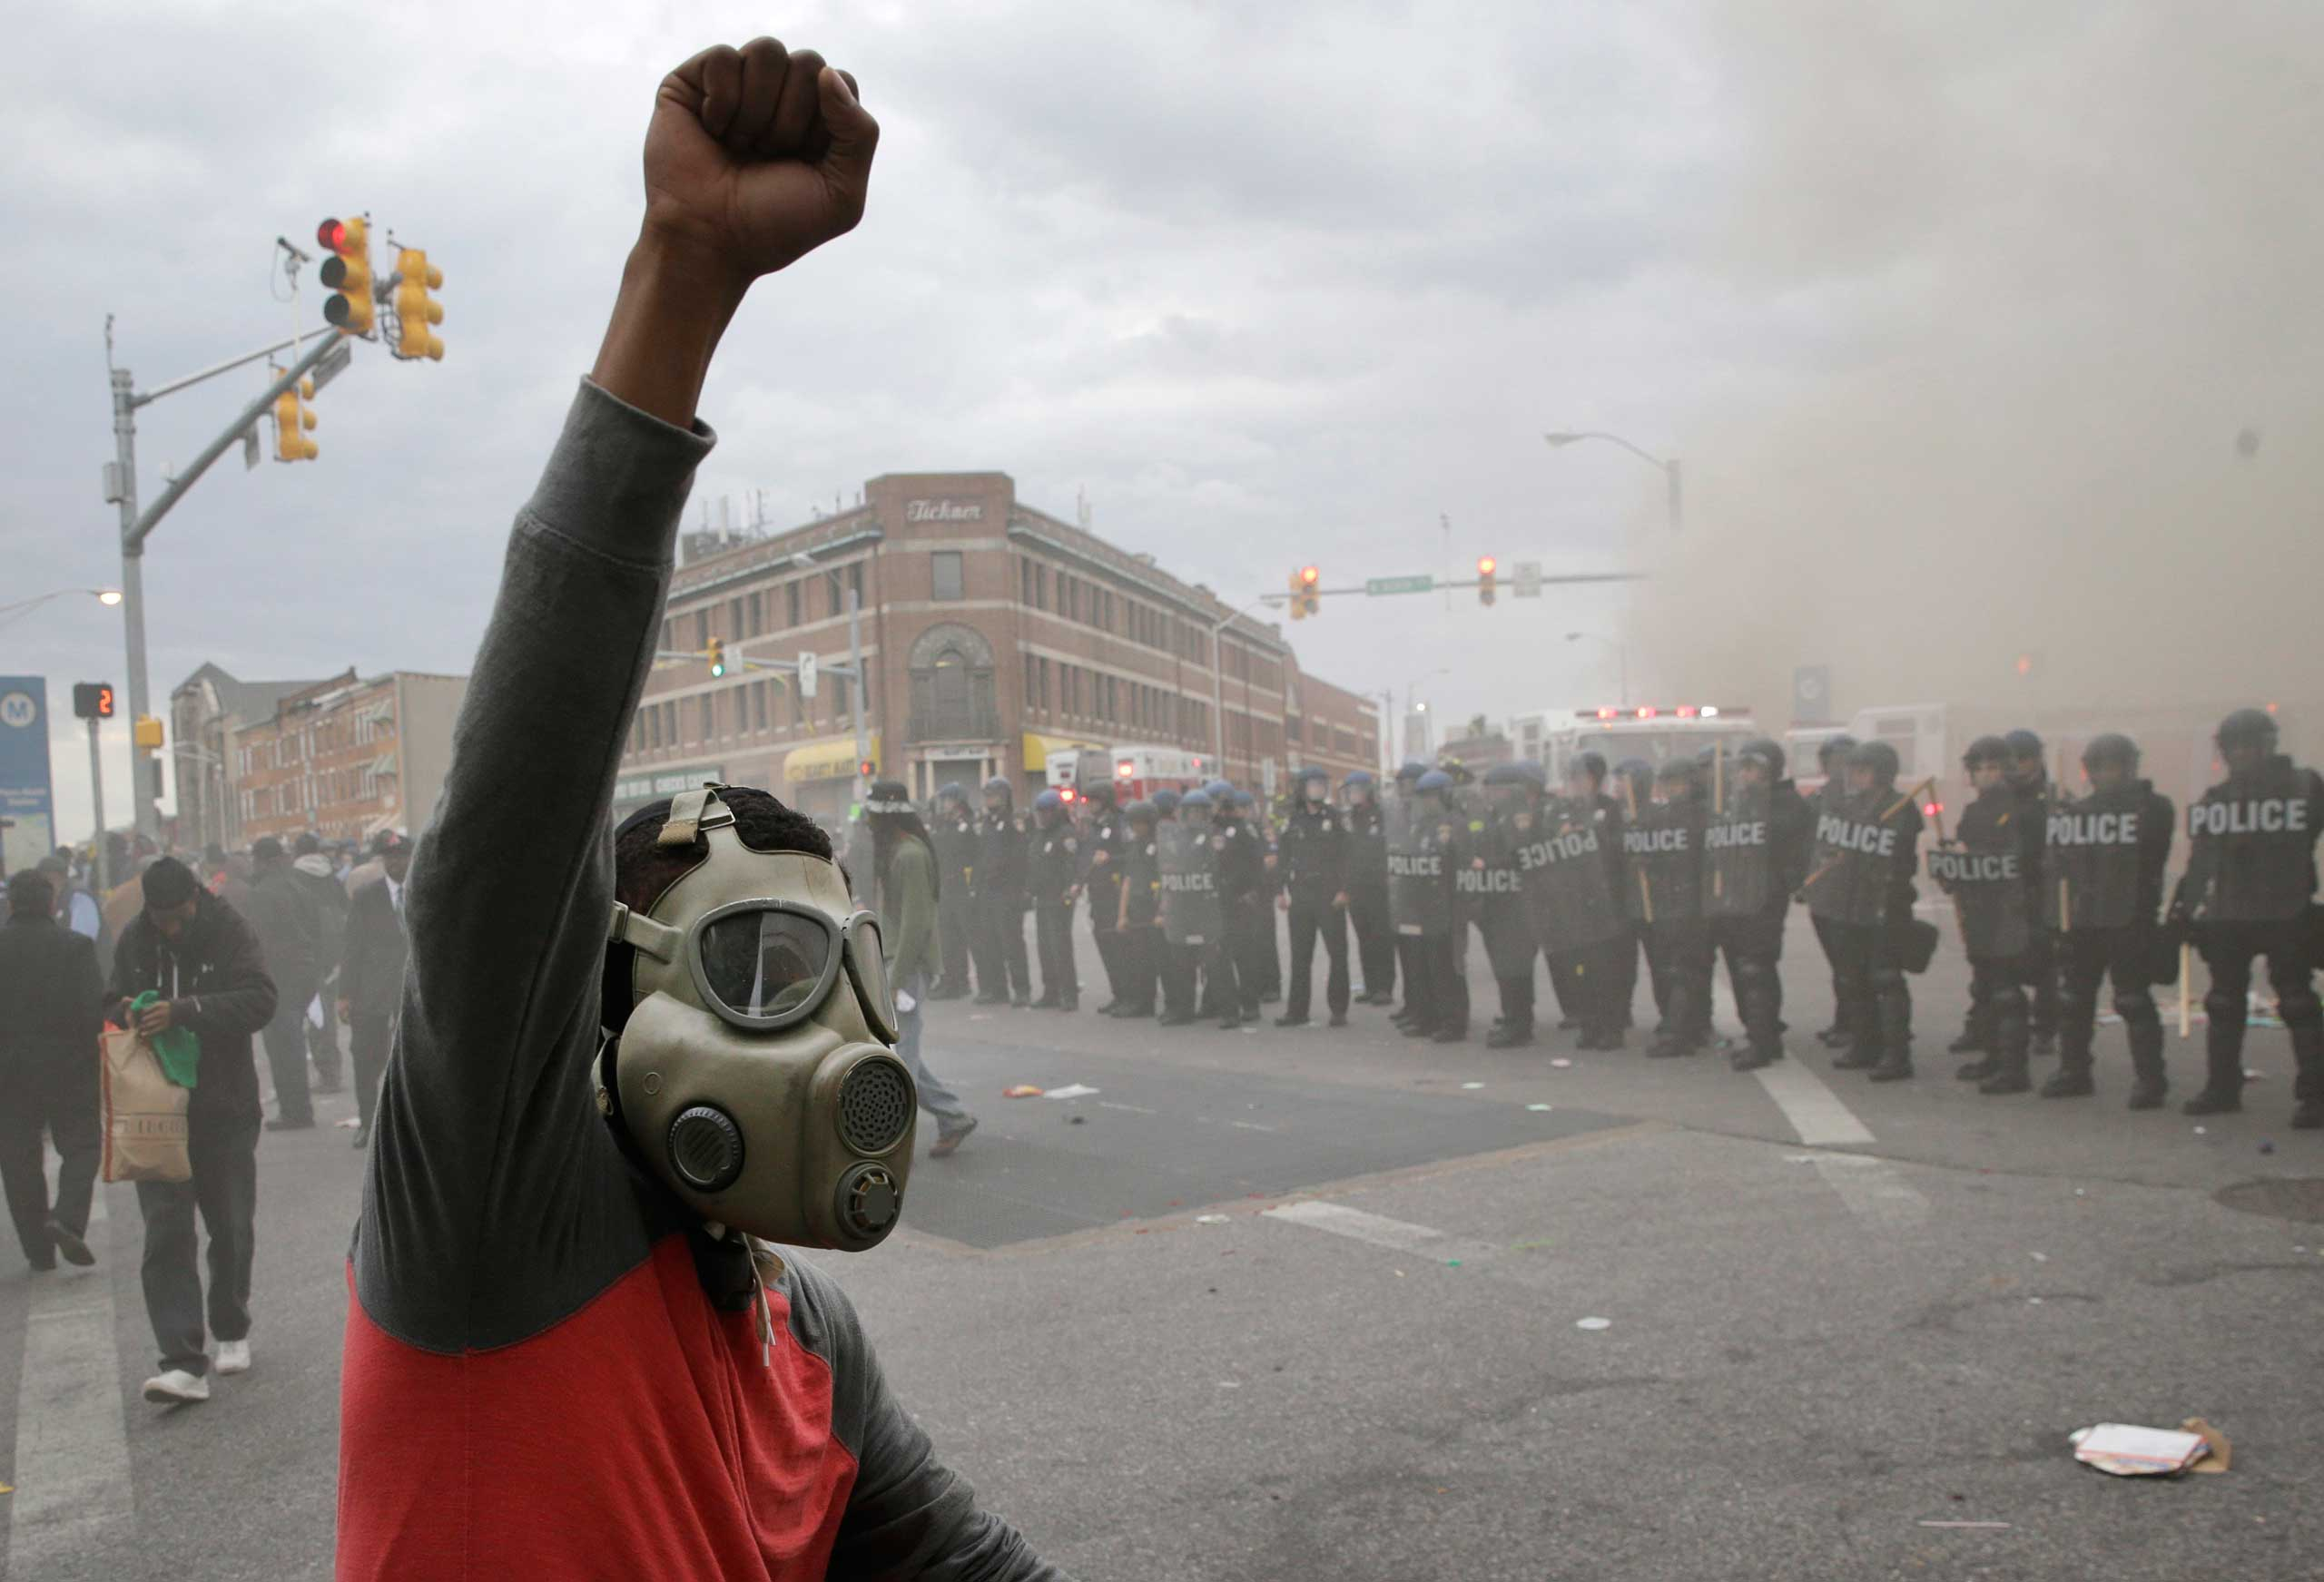 A demonstrator raises his fist as police stand in formation as a store burns during unrest following the funeral of Freddie Gray in Baltimore on Monday, April 27, 2015.